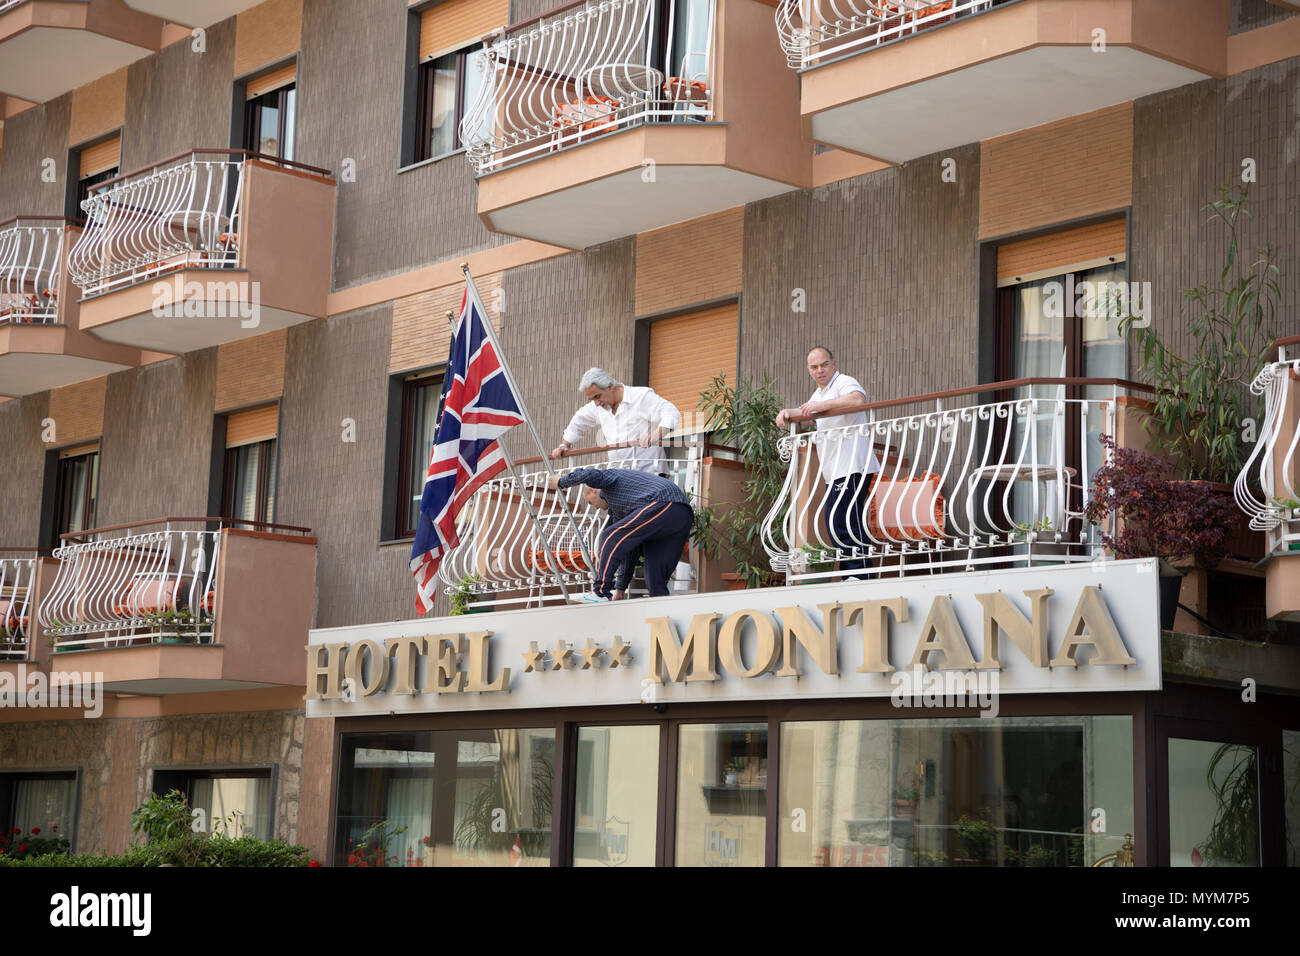 Putting up flags on the outside of the Hotel Montana, Sant' Agata, Sorrento Peninsula, Campania, Italy, Europe - Stock Image